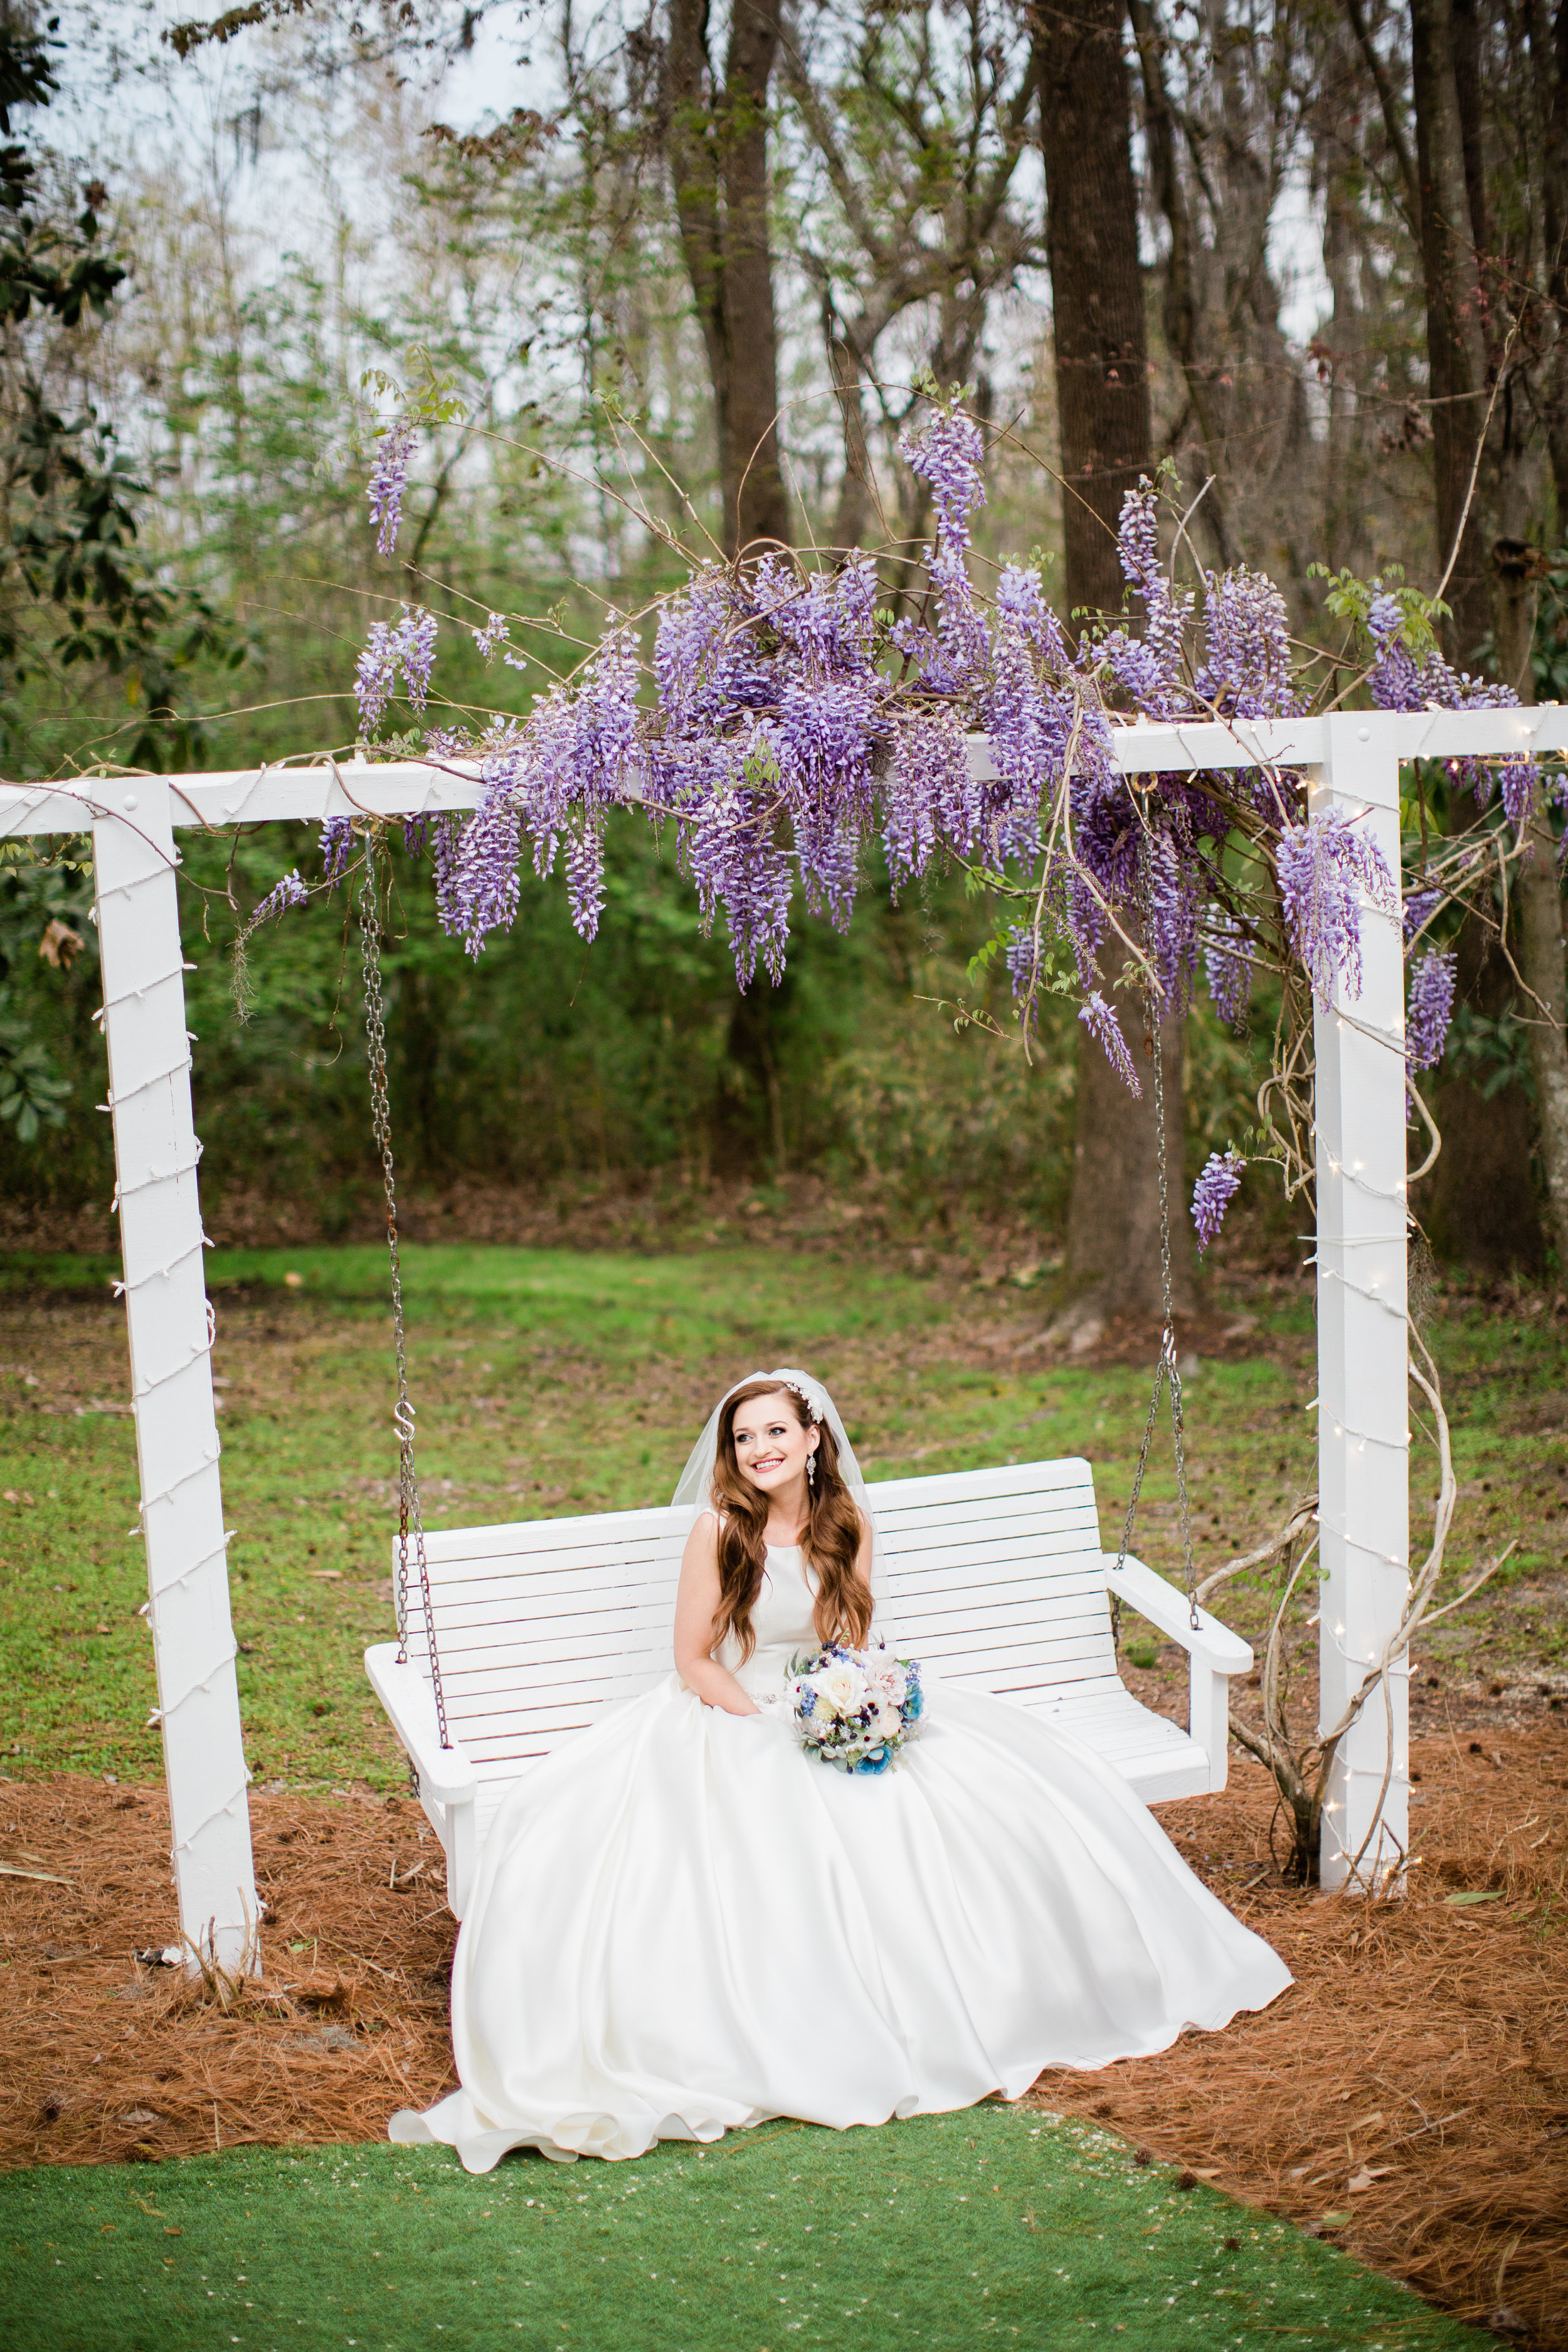 savannah-bridal-shop-i-and-b-bride-dallas-vitor-lindo-photography-verity-gown-by-maggie-sottero-savannah-wedding-gown-savannah-wedding-dress-mackey-house-wedding-1.jpg